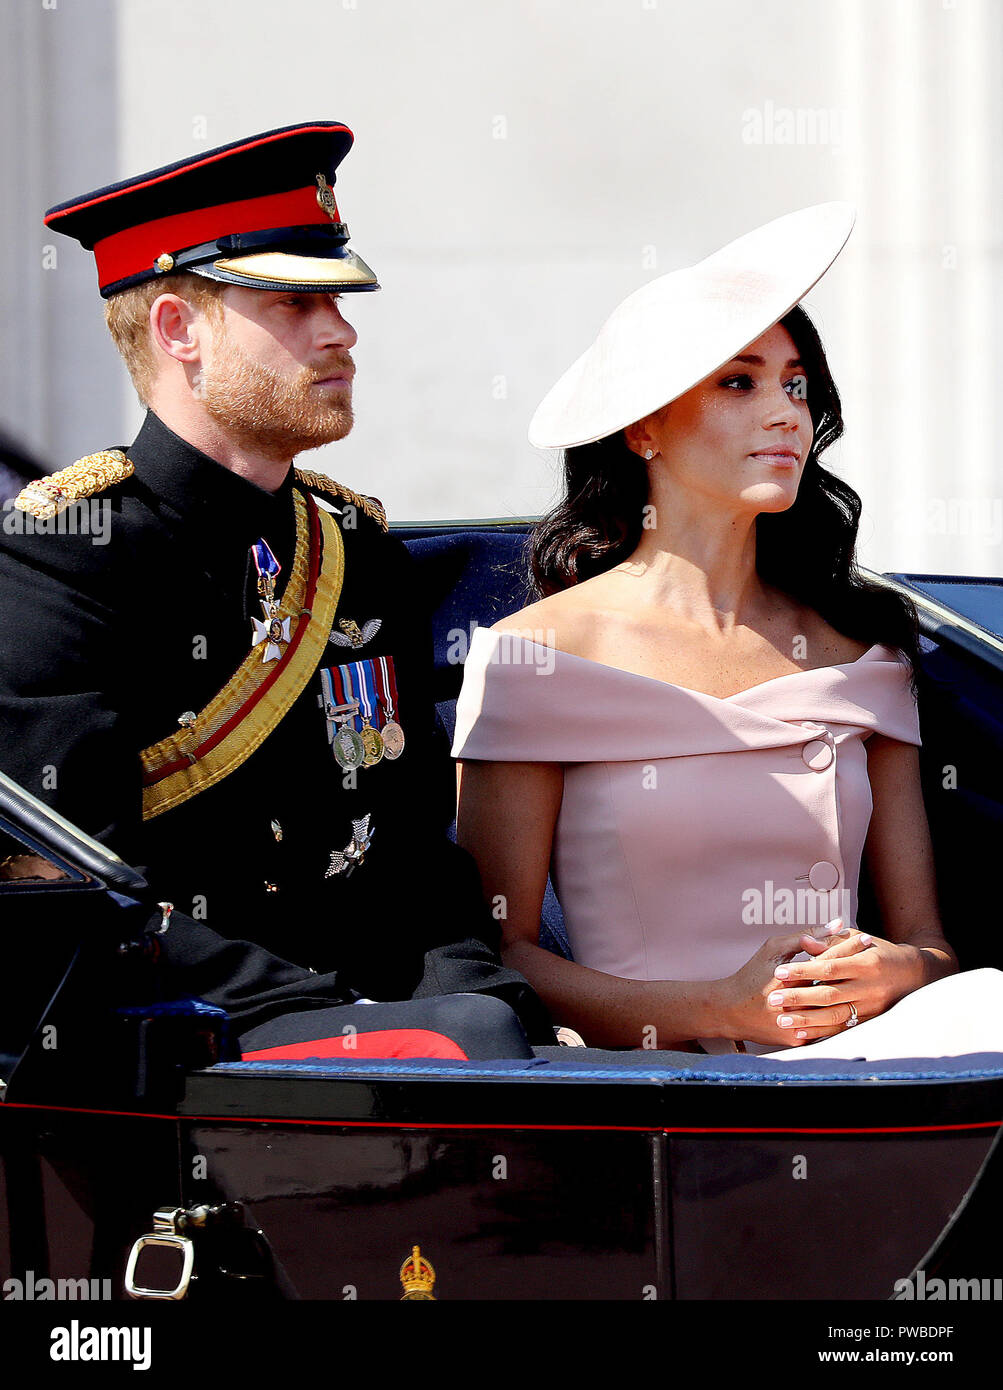 Prince Harry and Meghan, Duchess of Sussex leave at Buckingham Palace in London, on June 09, 2018, to attend Trooping the colour, the Queens birthday parade Photo : Albert Nieboer/Netherlands OUT/Point de Vue OUT - NO WIRE SERVICE - Photo: Albert Nieboer/RoyalPress/dpa | usage worldwide Stock Photo